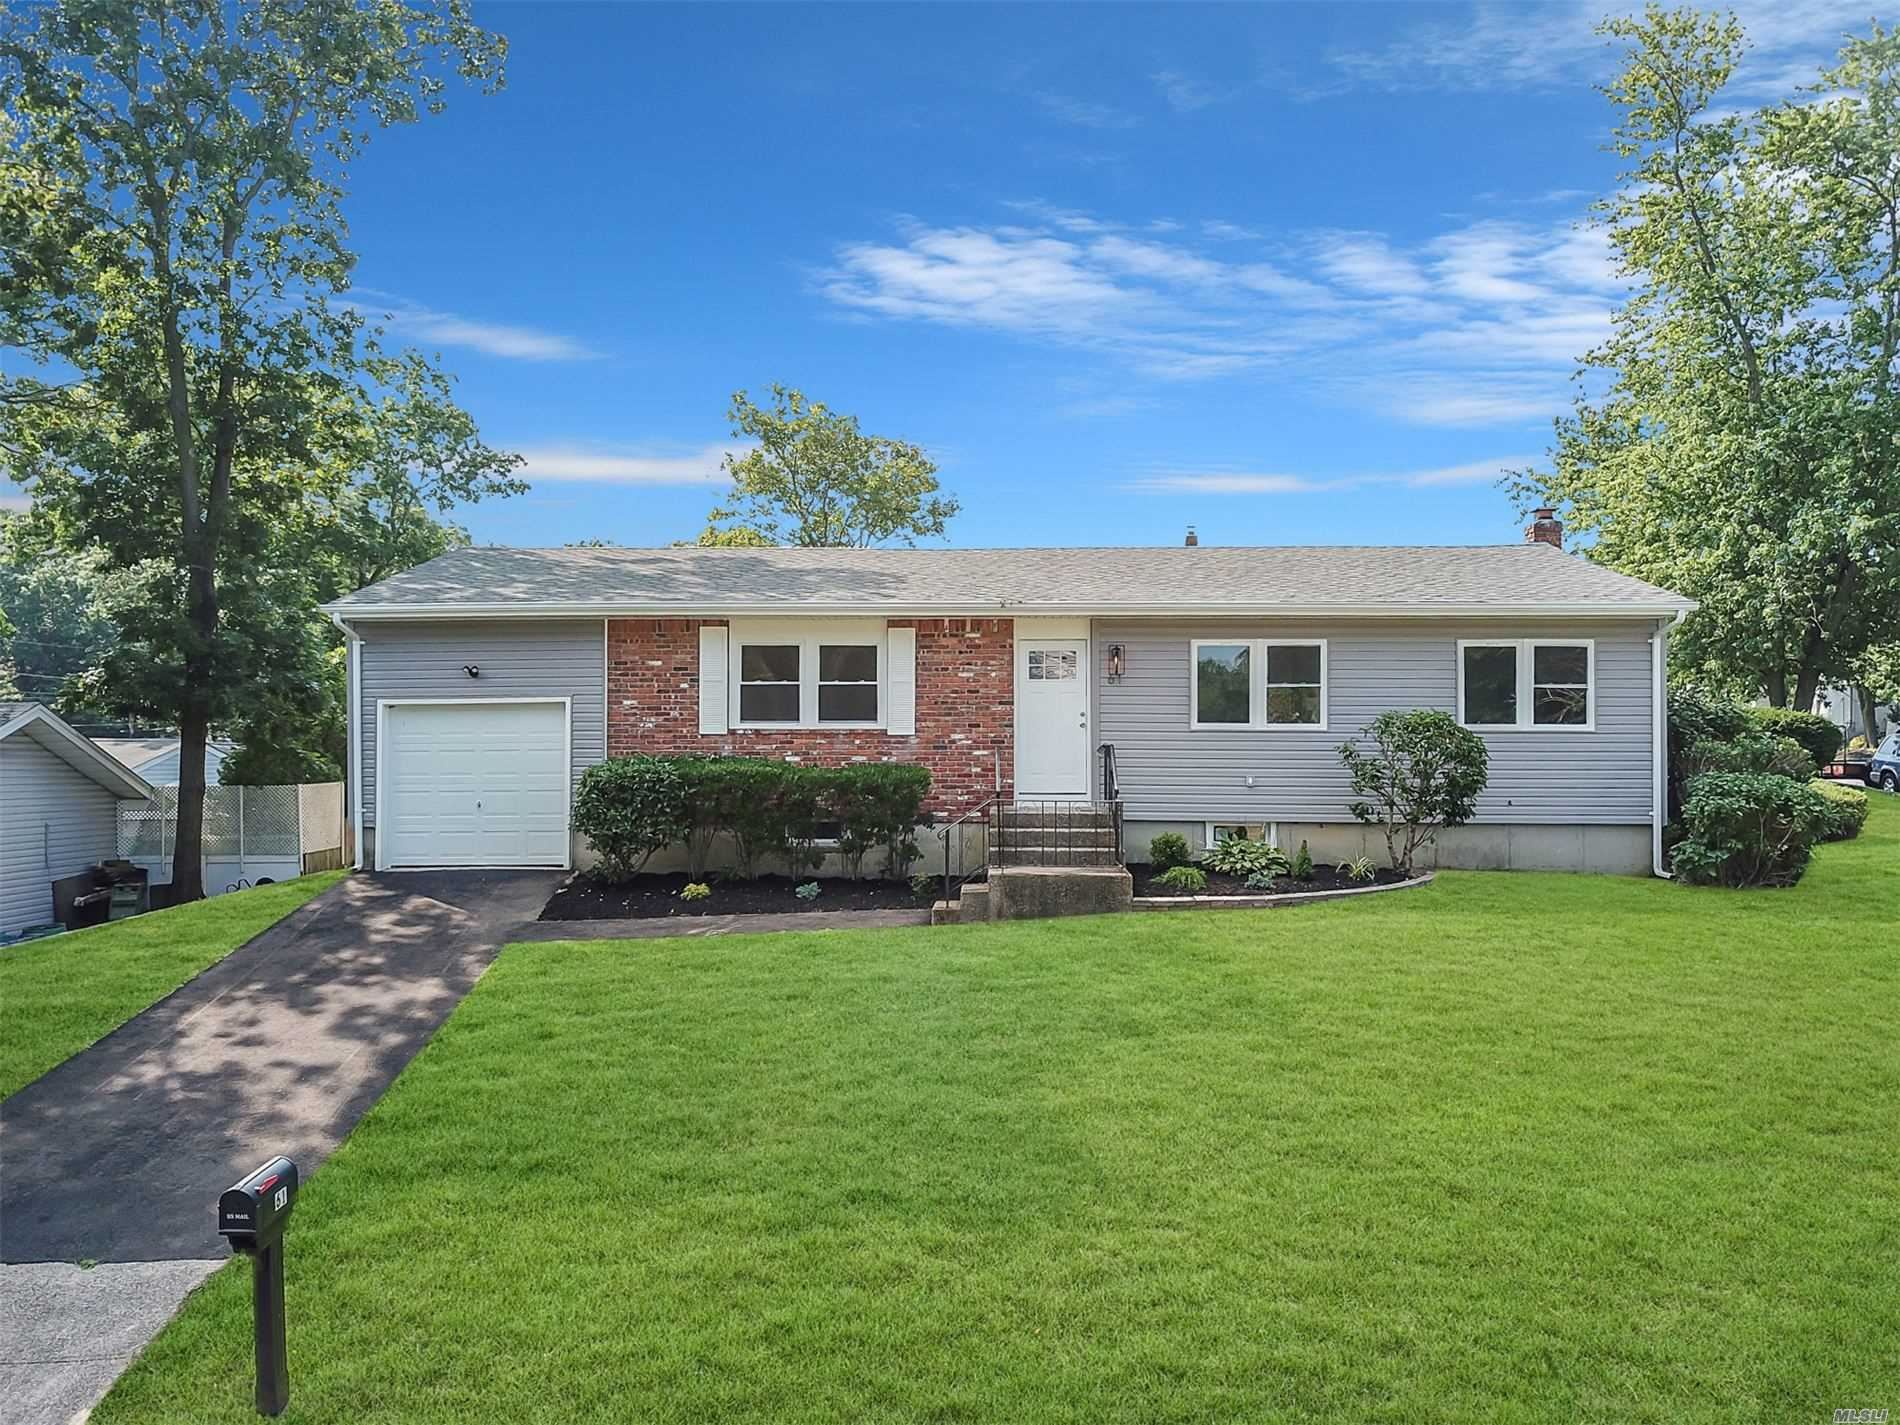 61 Hillside Ave, Patchogue, NY 11772 - MLS#: 3235118